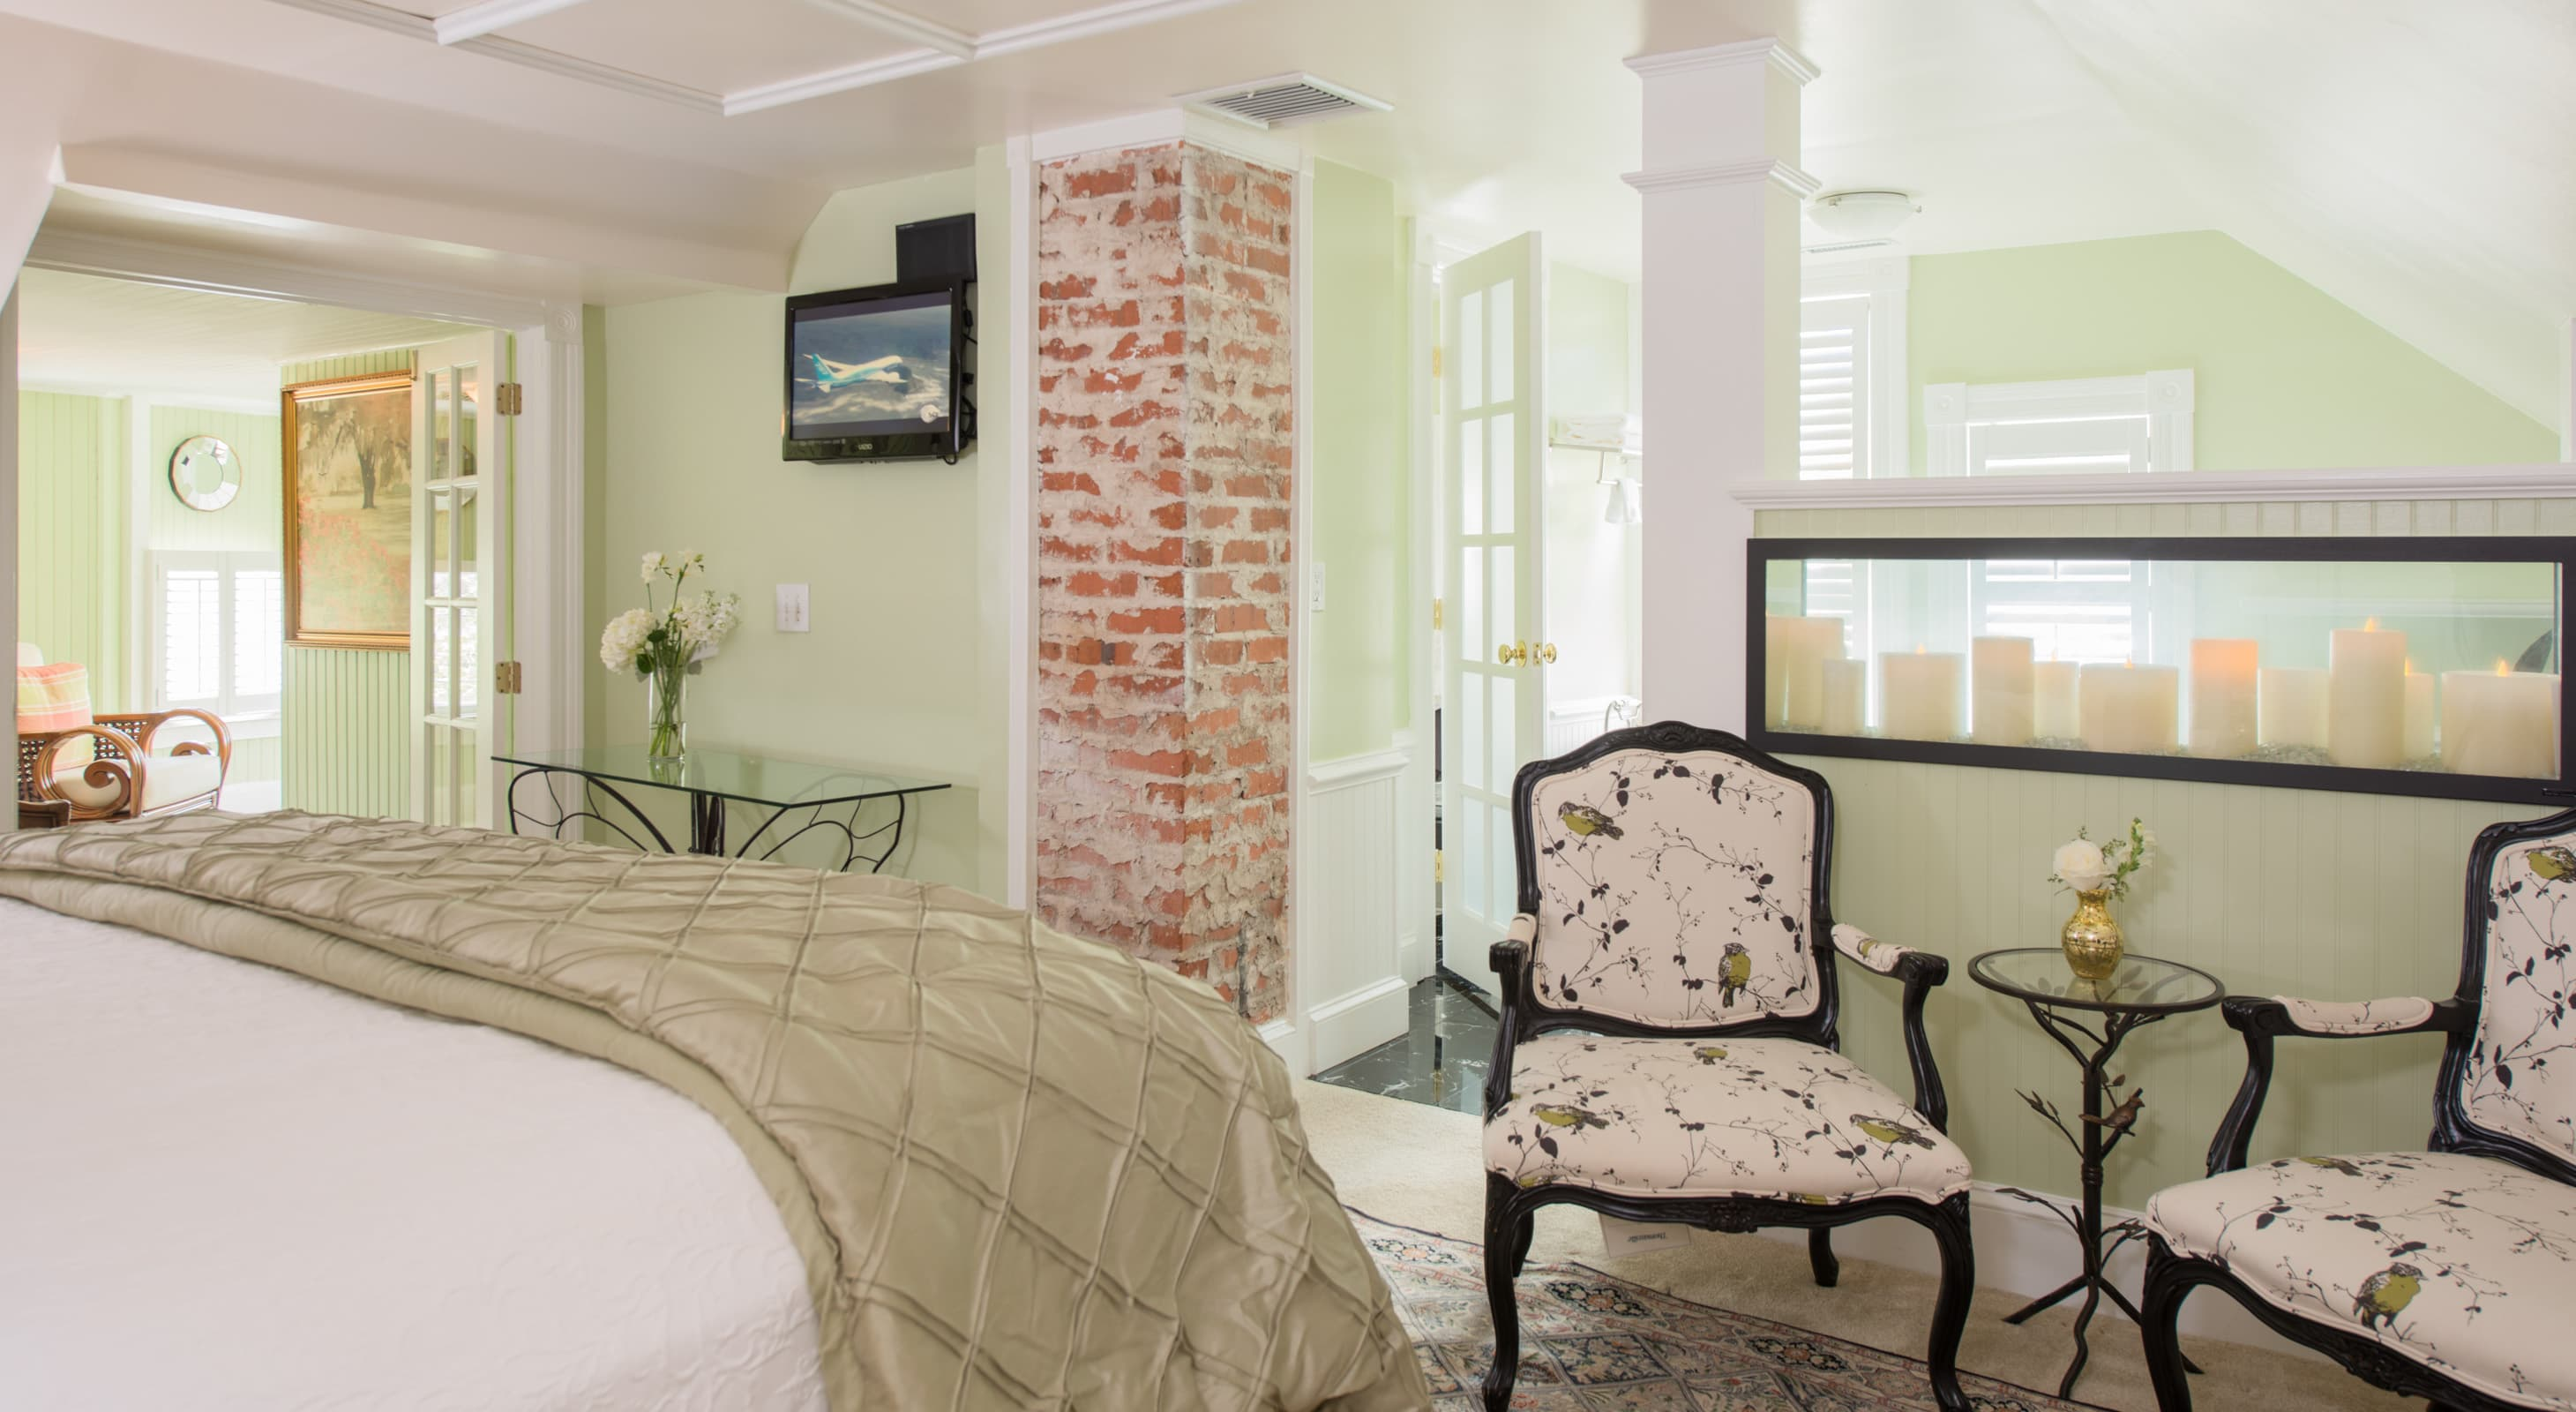 Large King Suite with Exposed Brick at Our Manteo North Carolina Inn